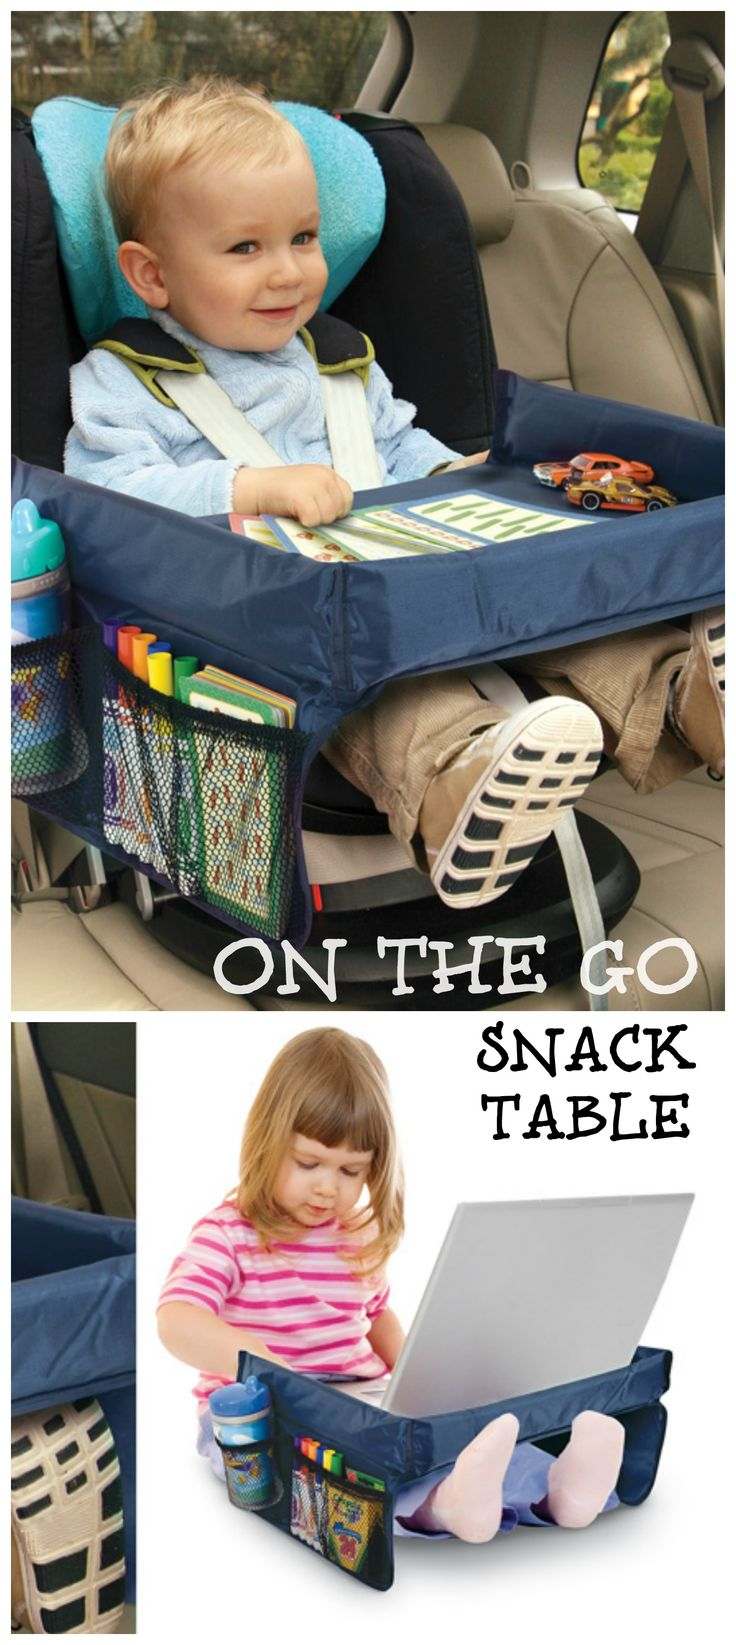 On the Go Snack Table - I can't tell you how many times I wish I had one of these in my car for the kids!